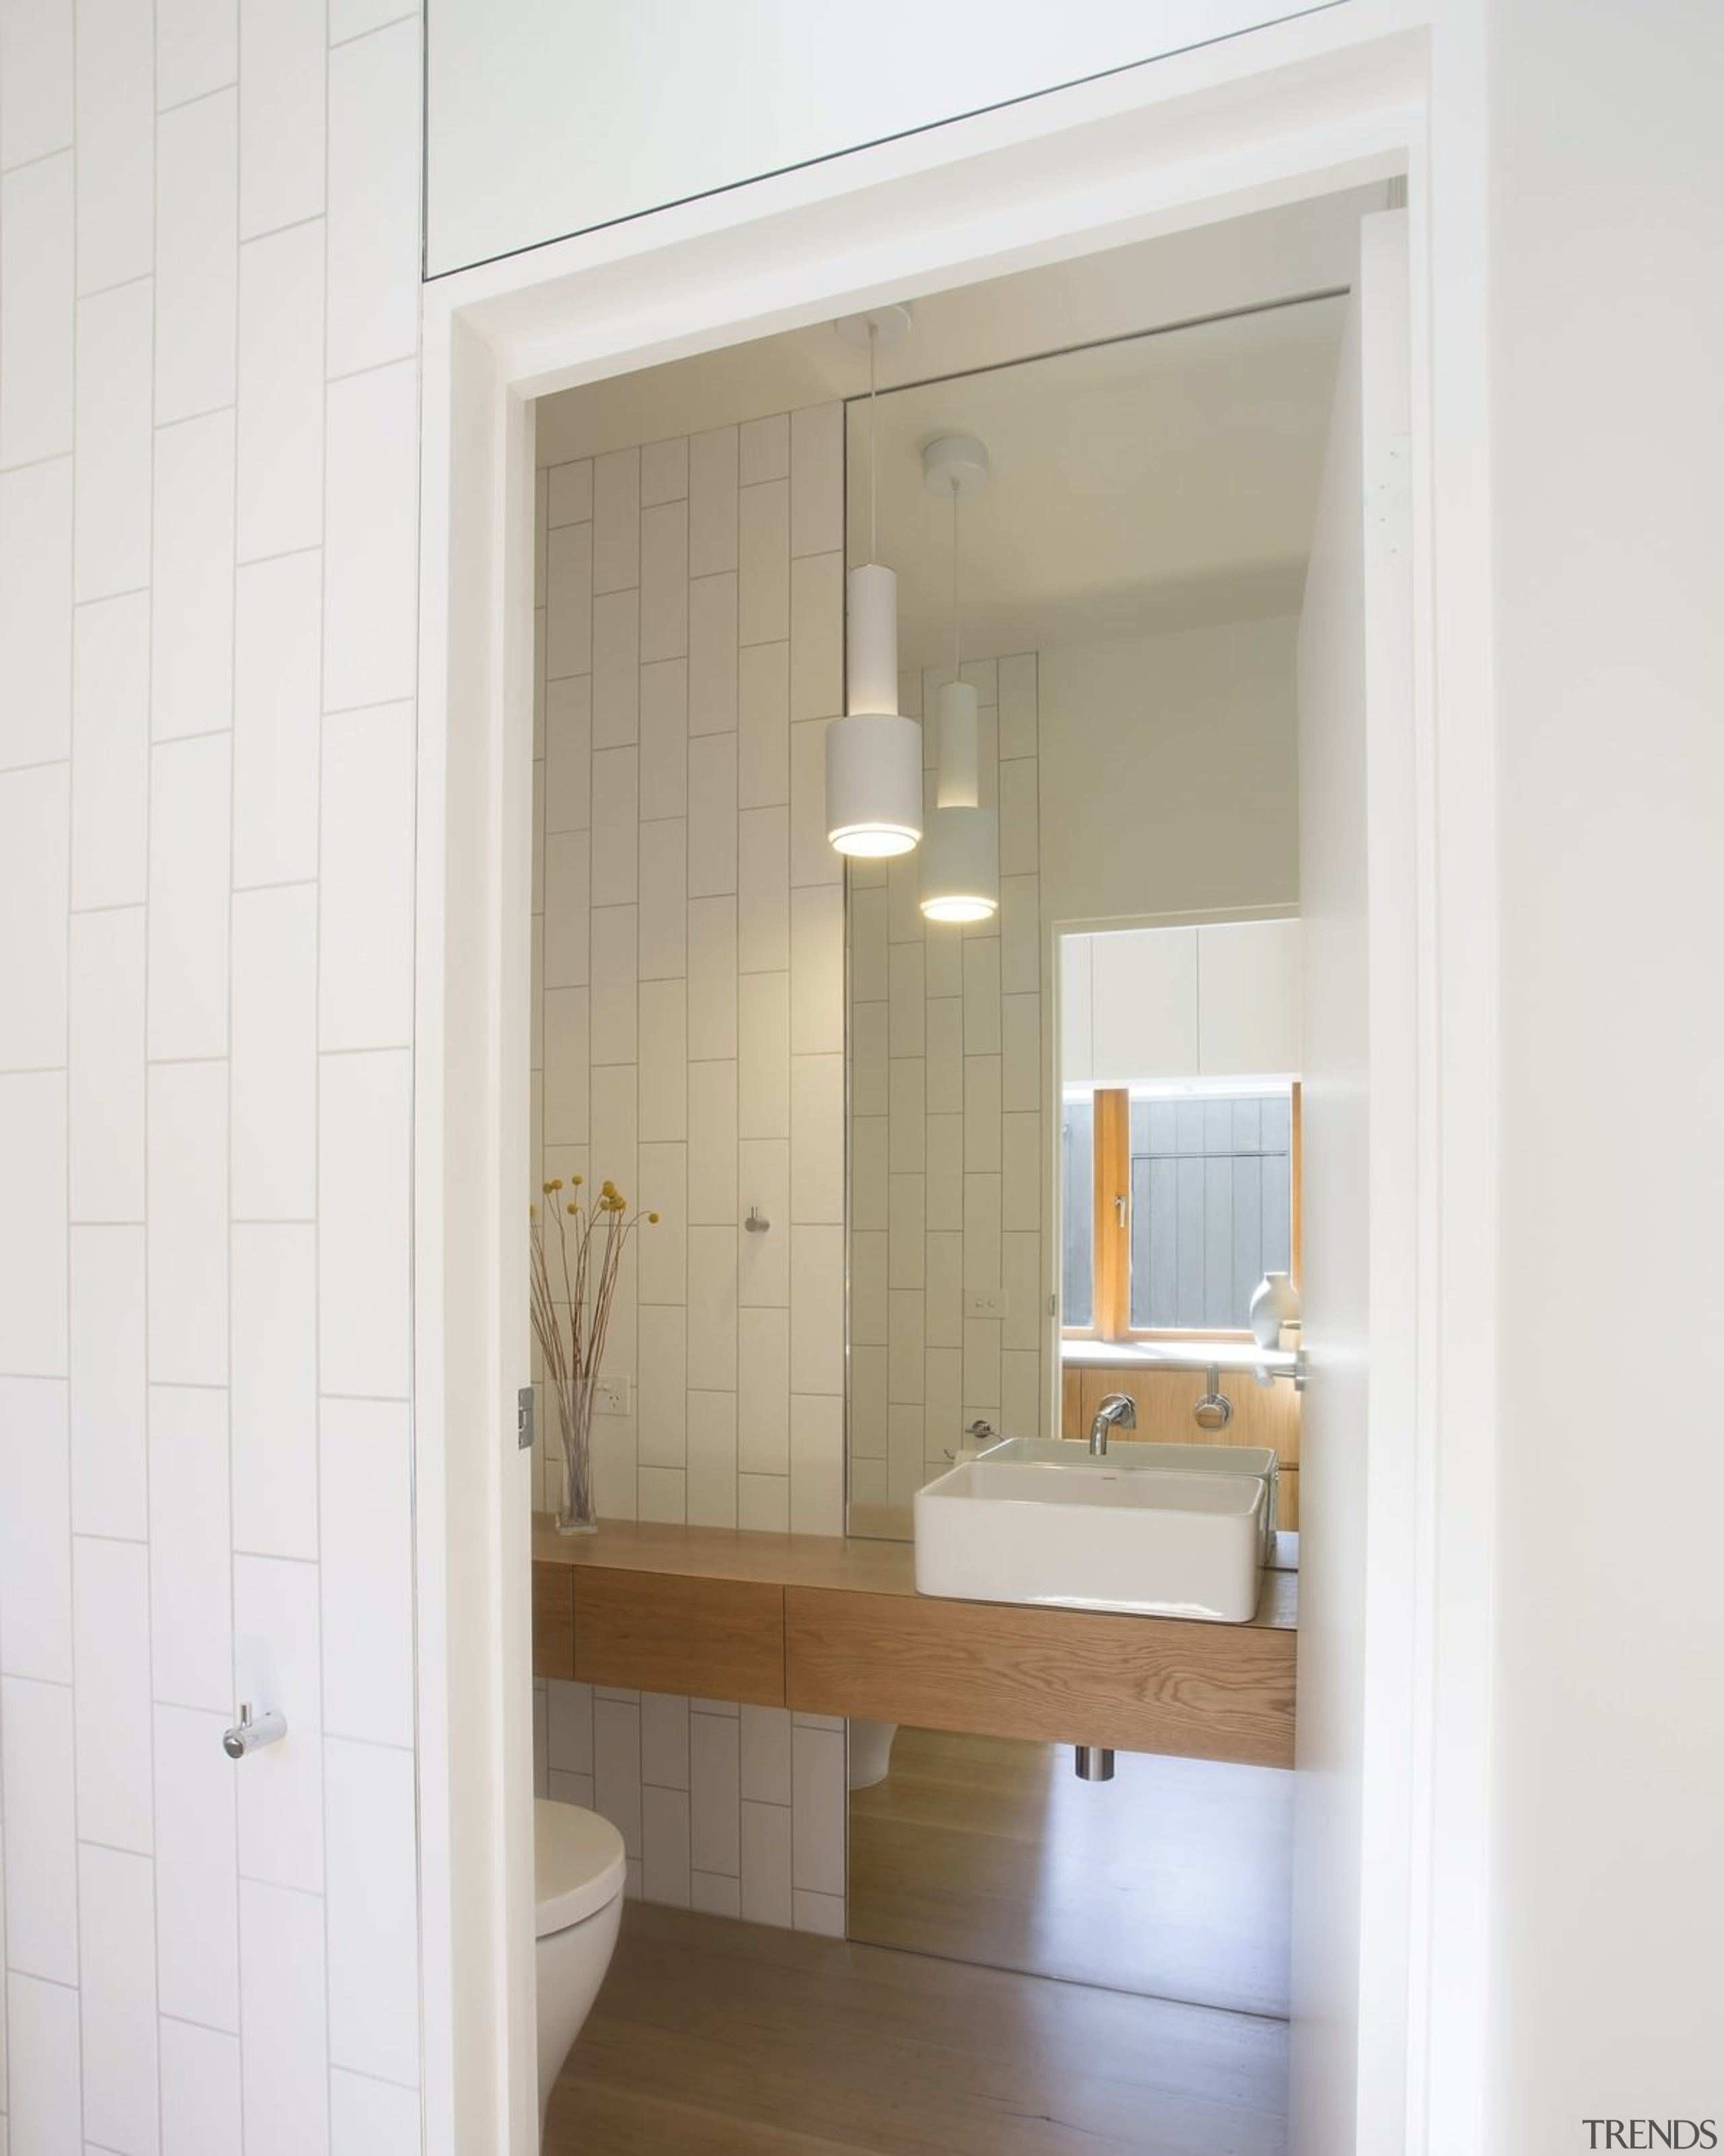 This powder room tucked off to the side, bathroom, bathroom accessory, bathroom cabinet, door, floor, home, interior design, plumbing fixture, room, sink, window, white